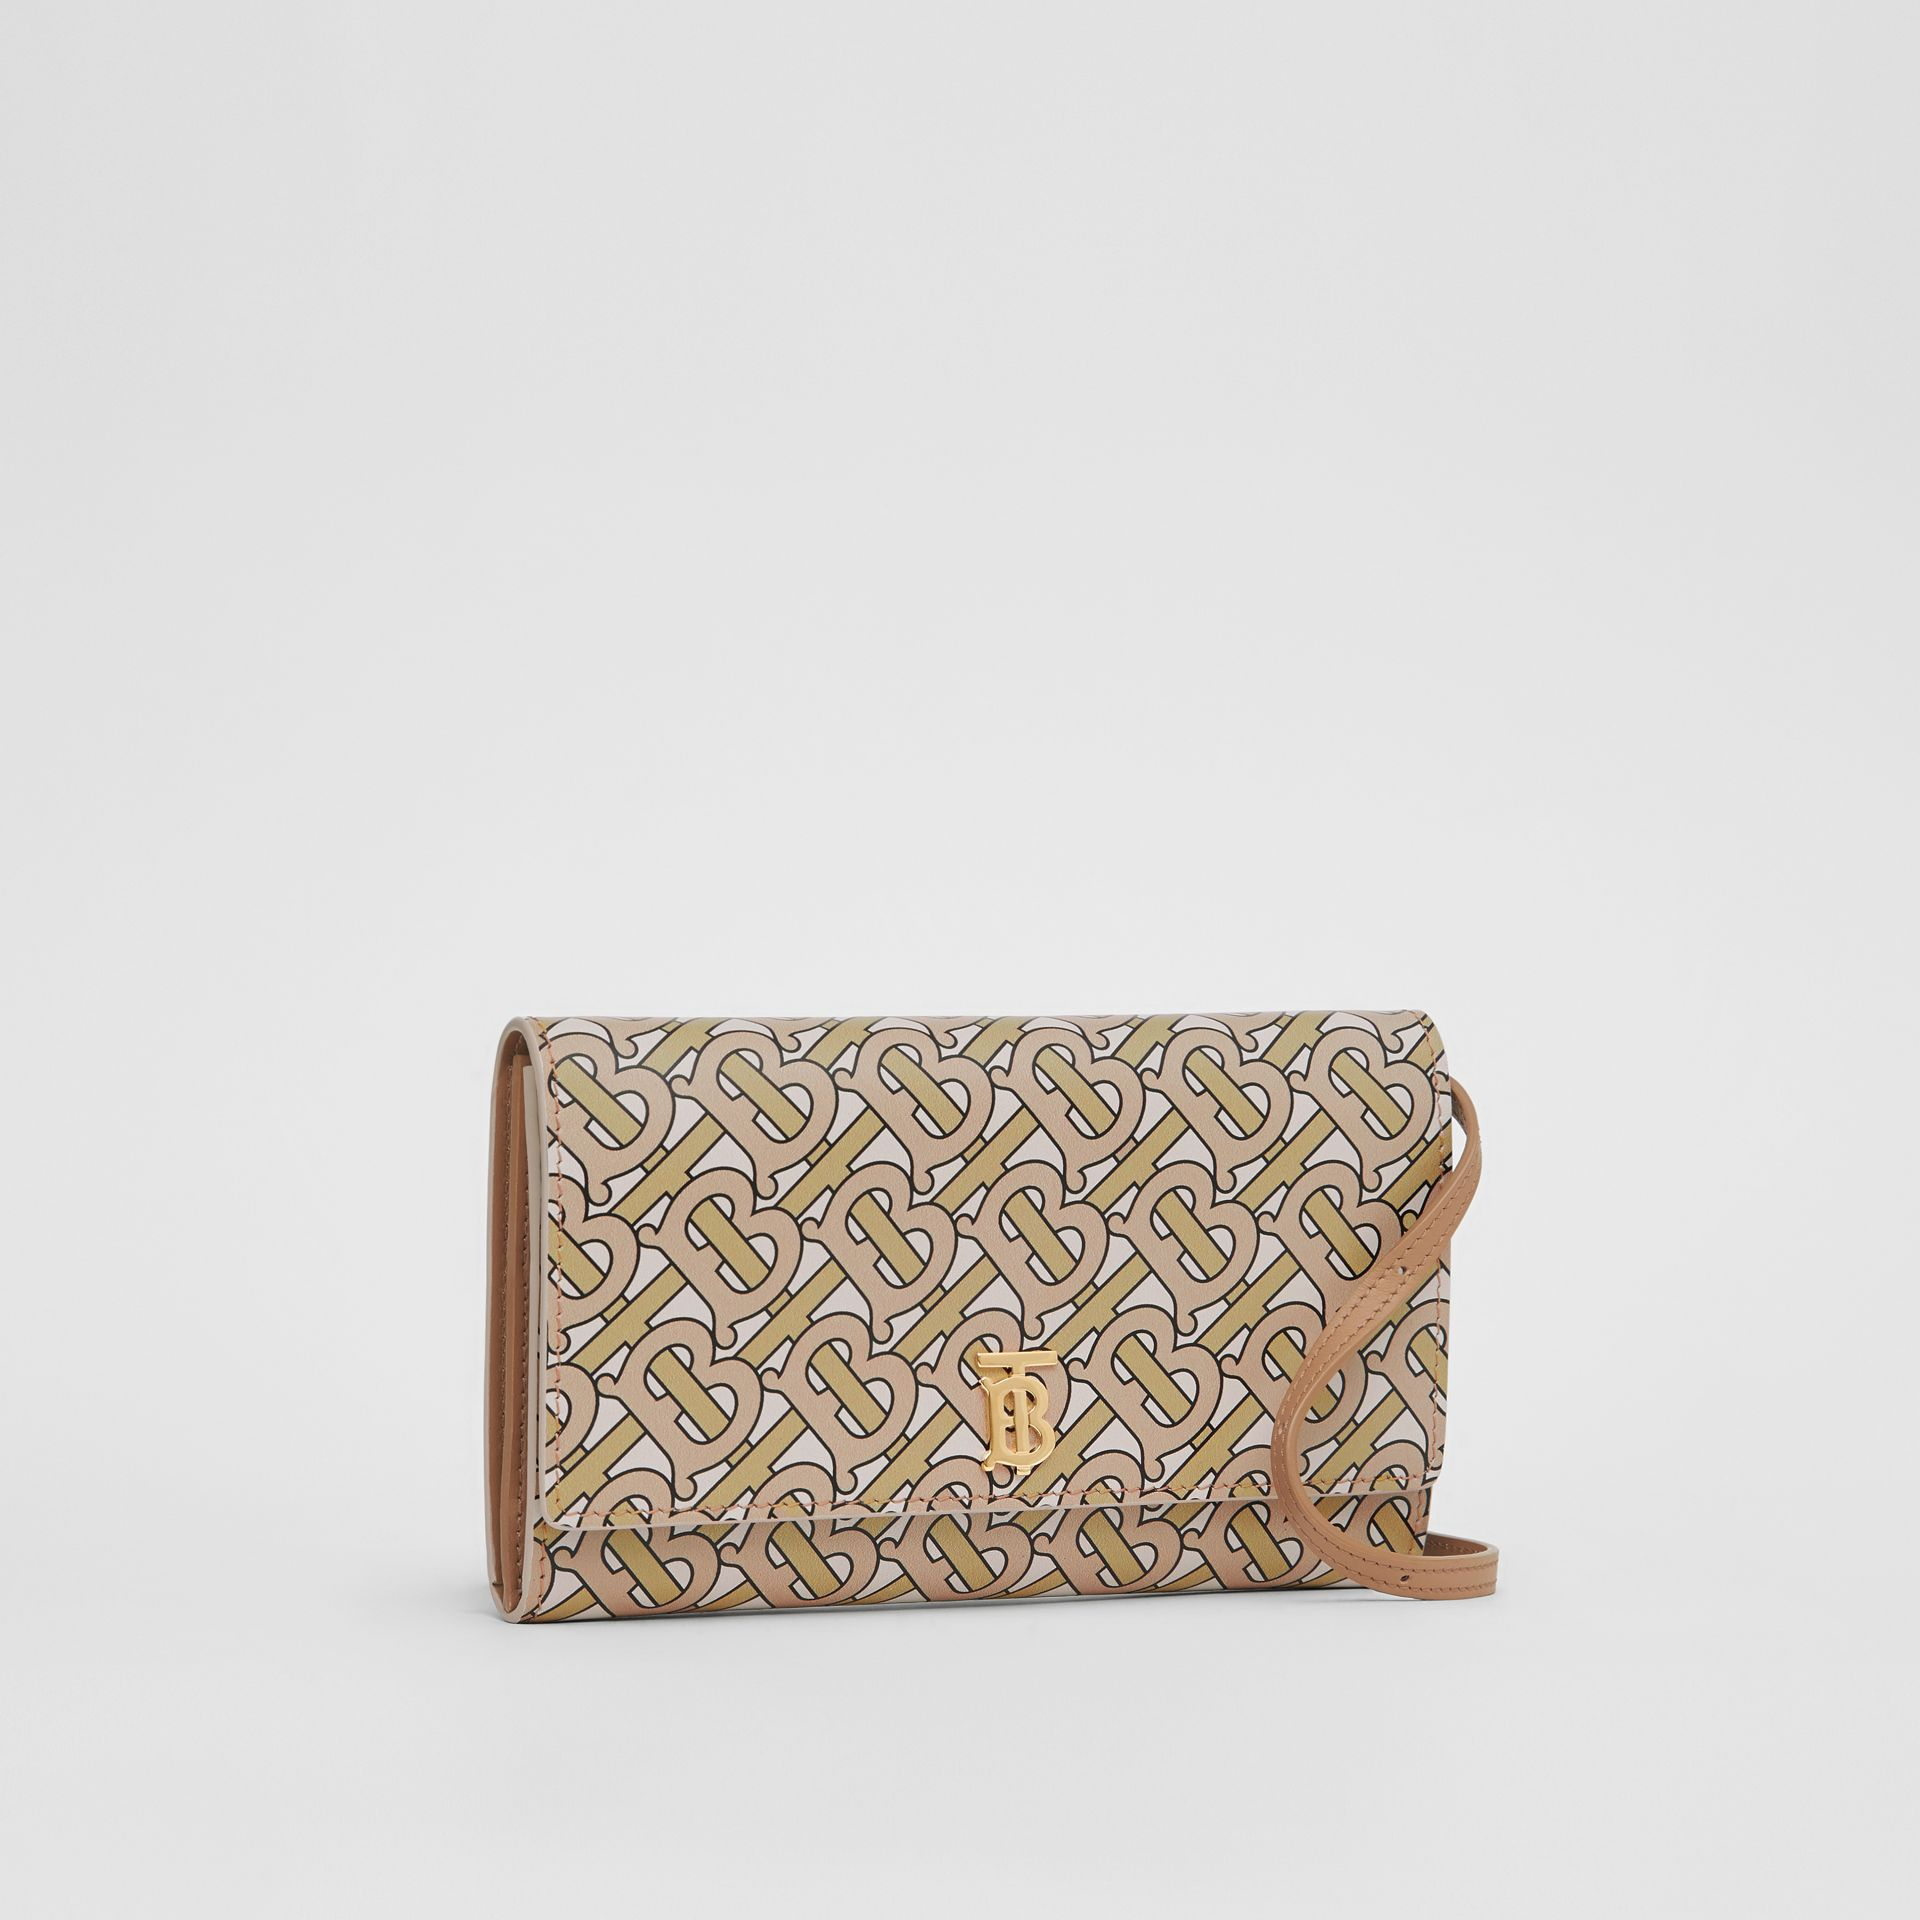 Monogram Print Leather Wallet with Detachable Strap in Beige - Women | Burberry - gallery image 6